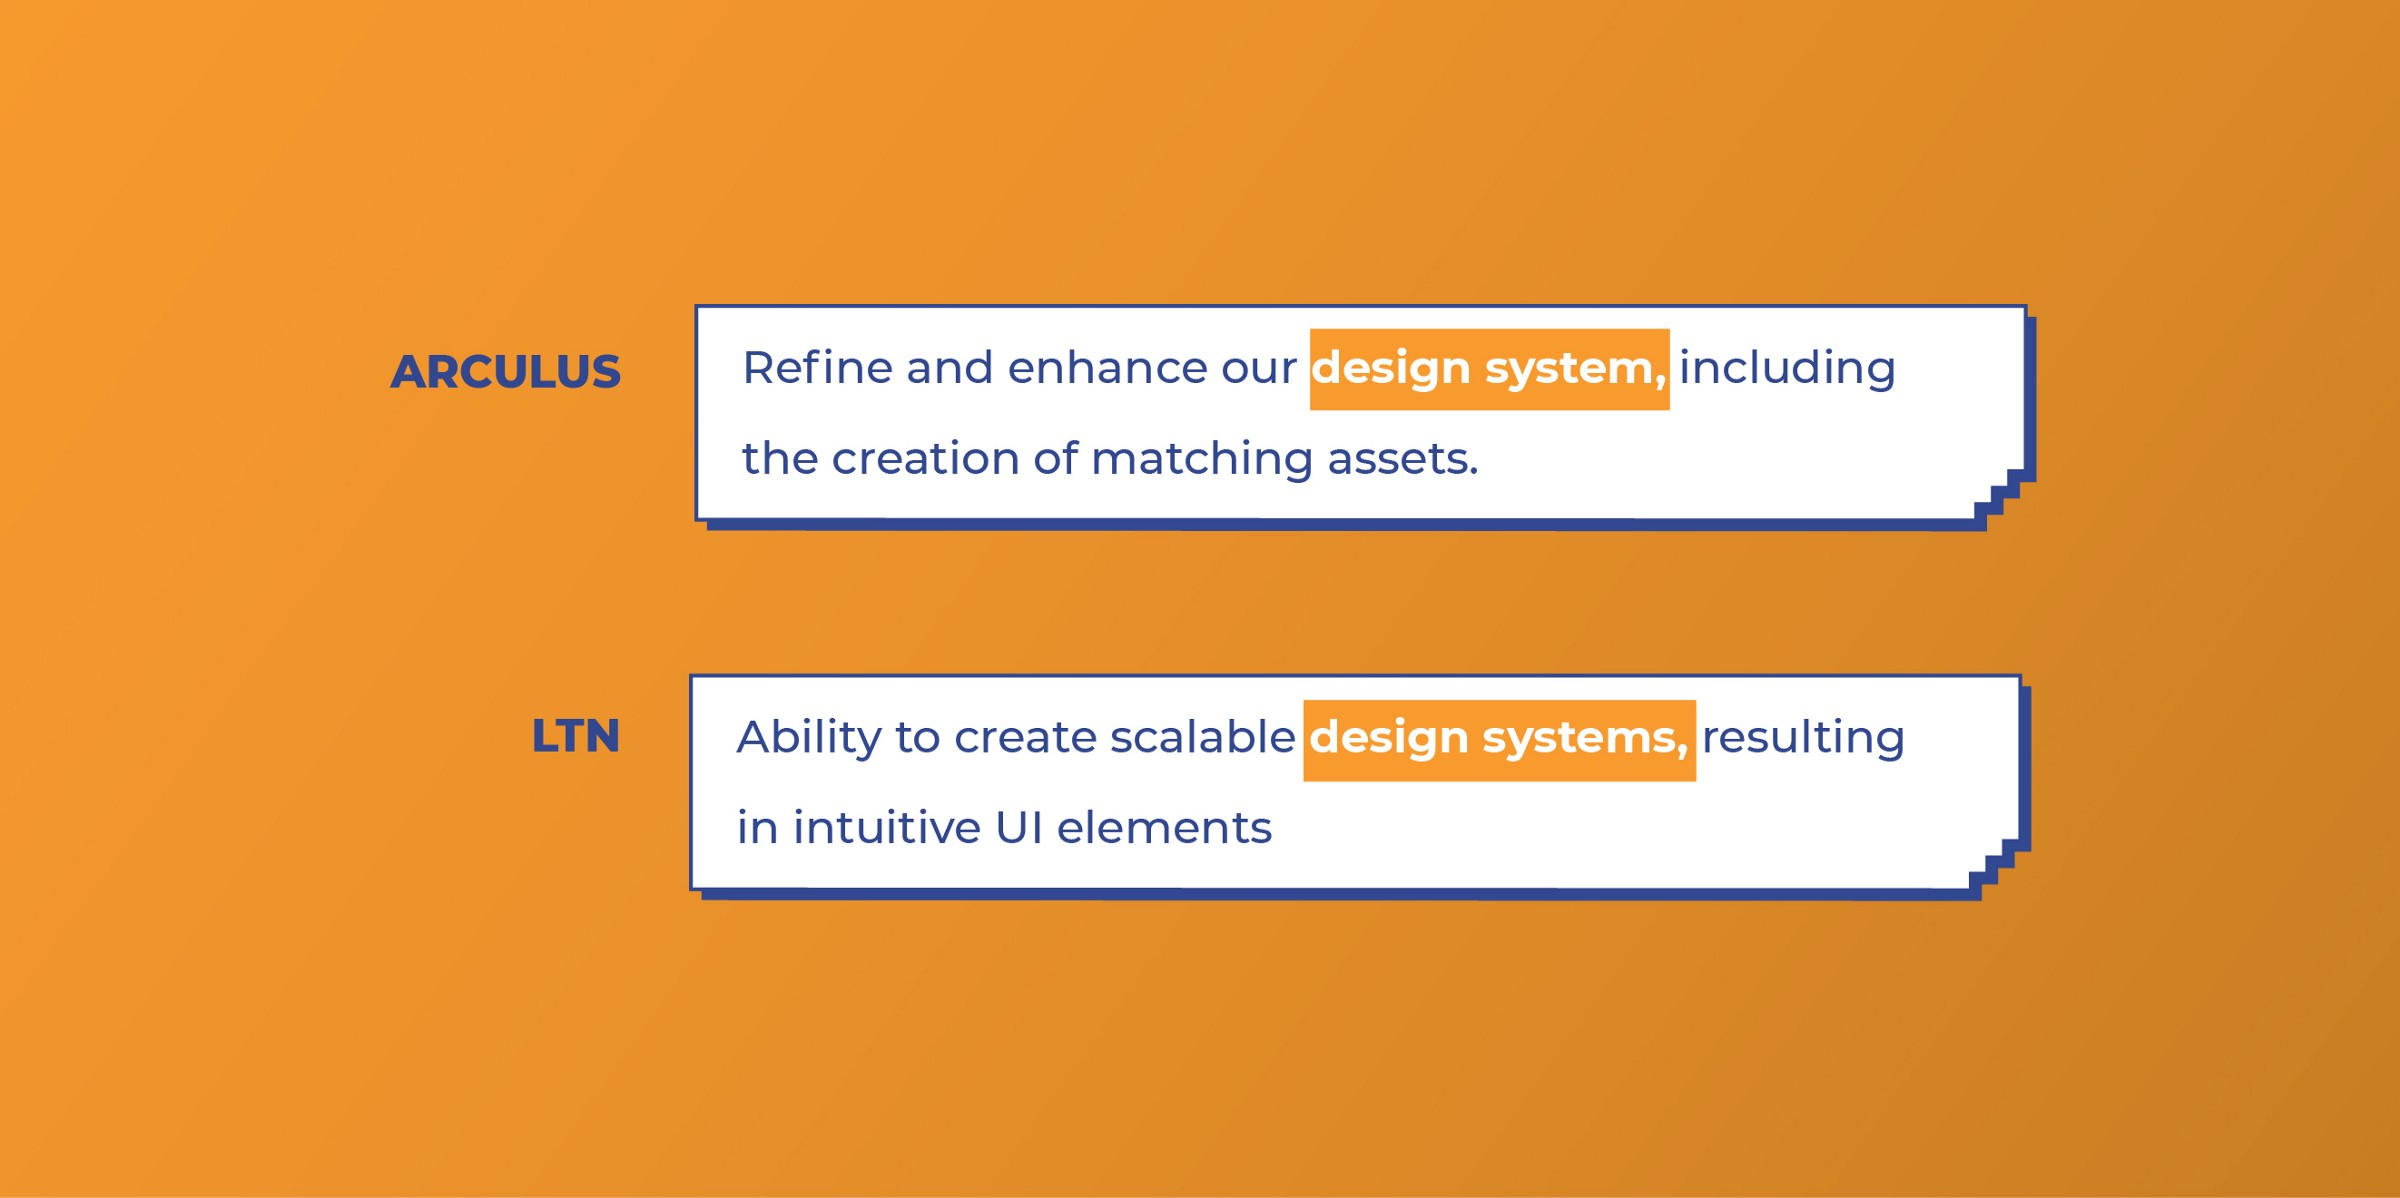 Arculus and LTN look for Design Systemwork from UI designers